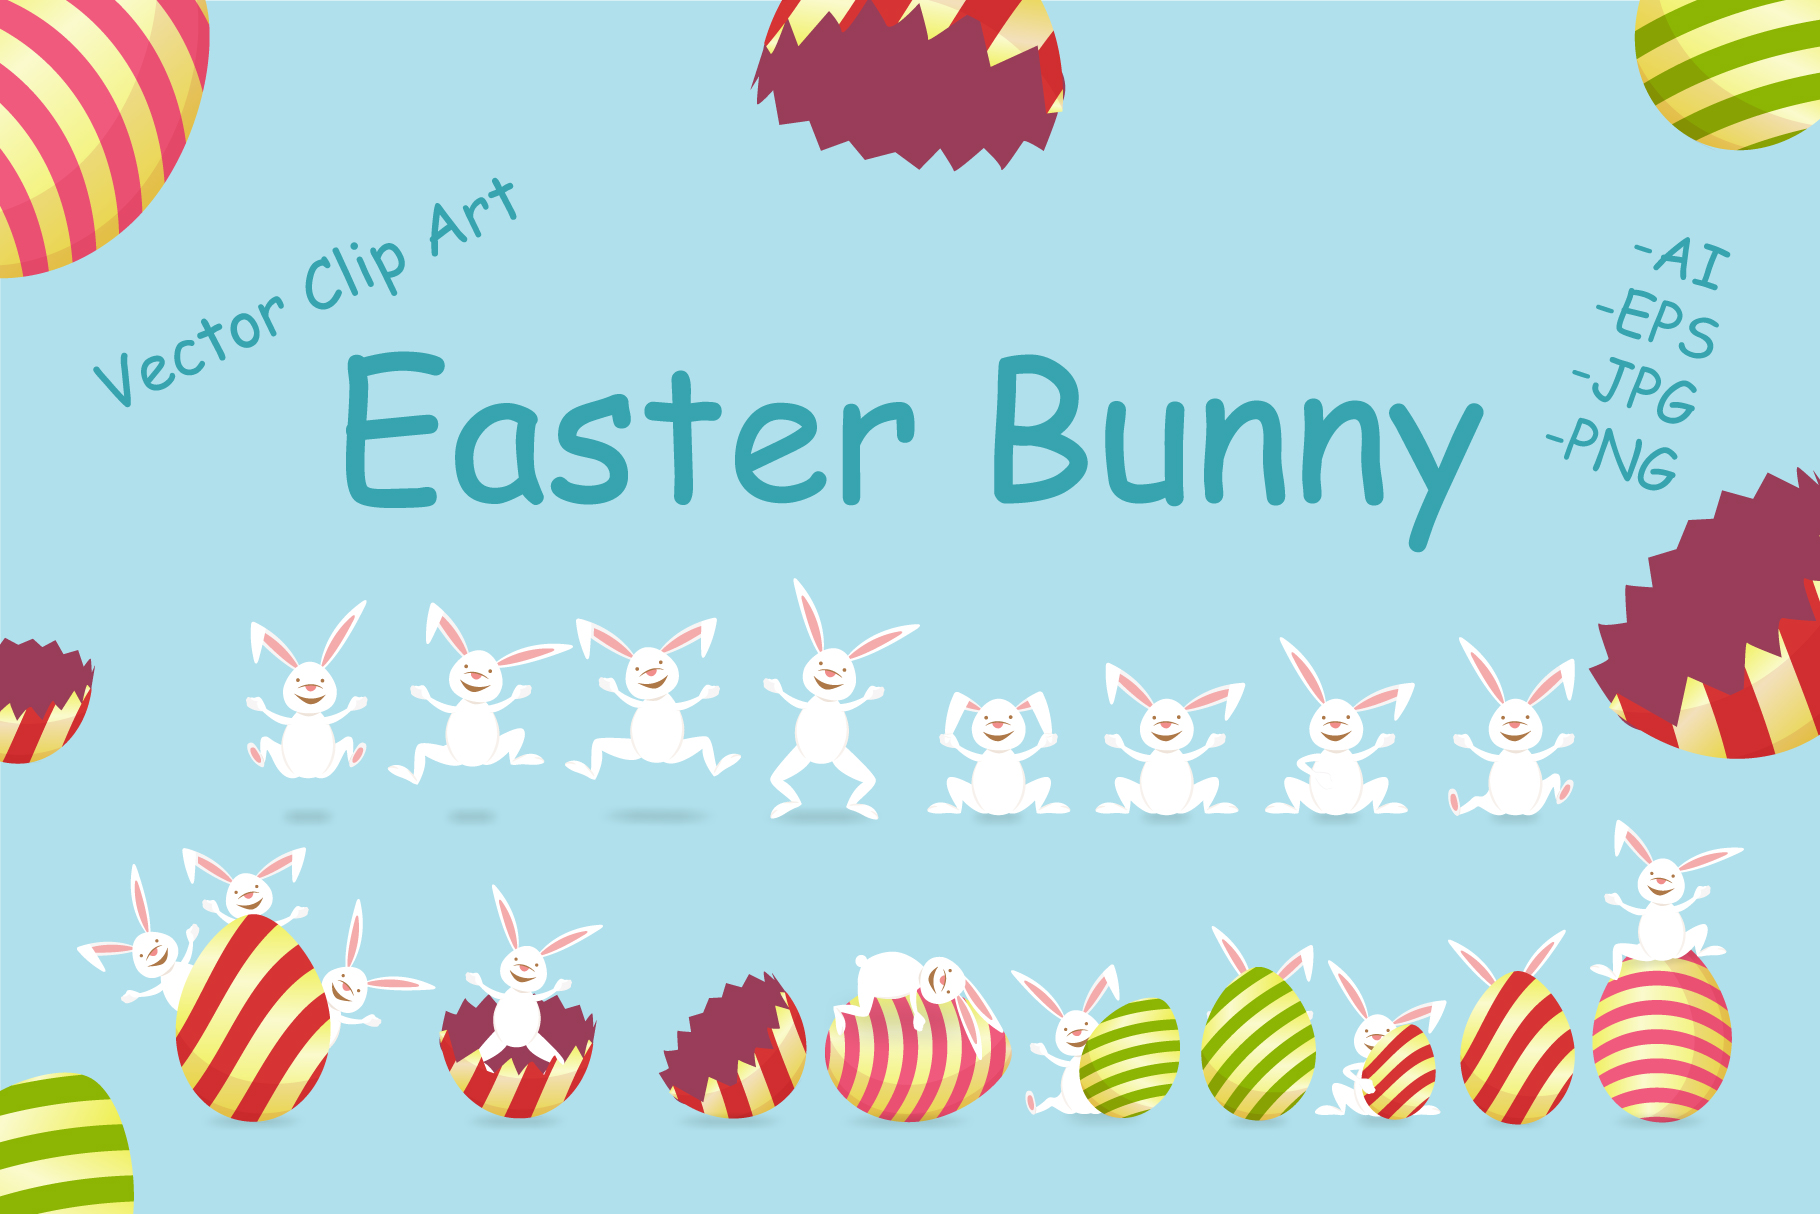 Easter Bunny and Egg Clip Art example image 1